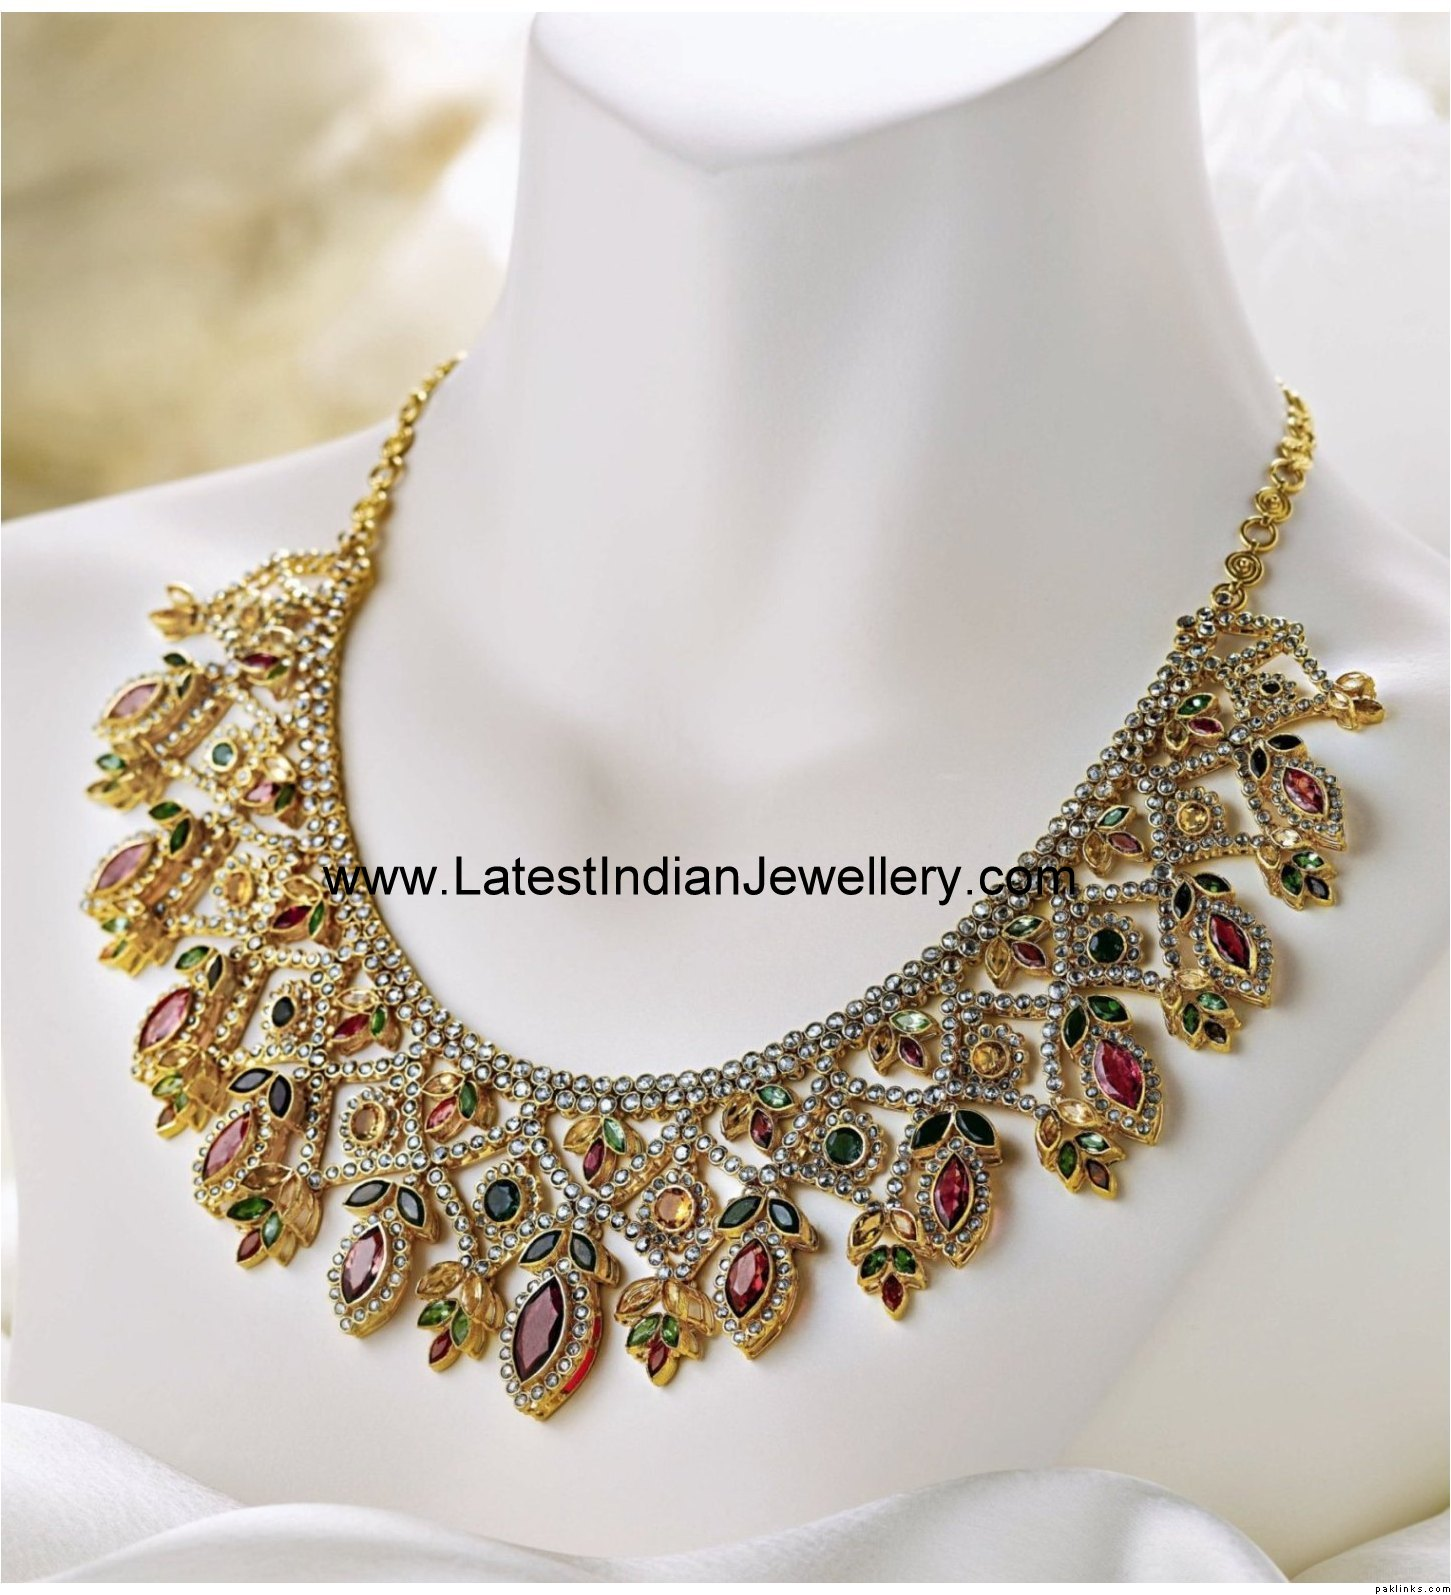 Lovely Design Of Tanishq Gold Jewellery | Jewellry\'s Website